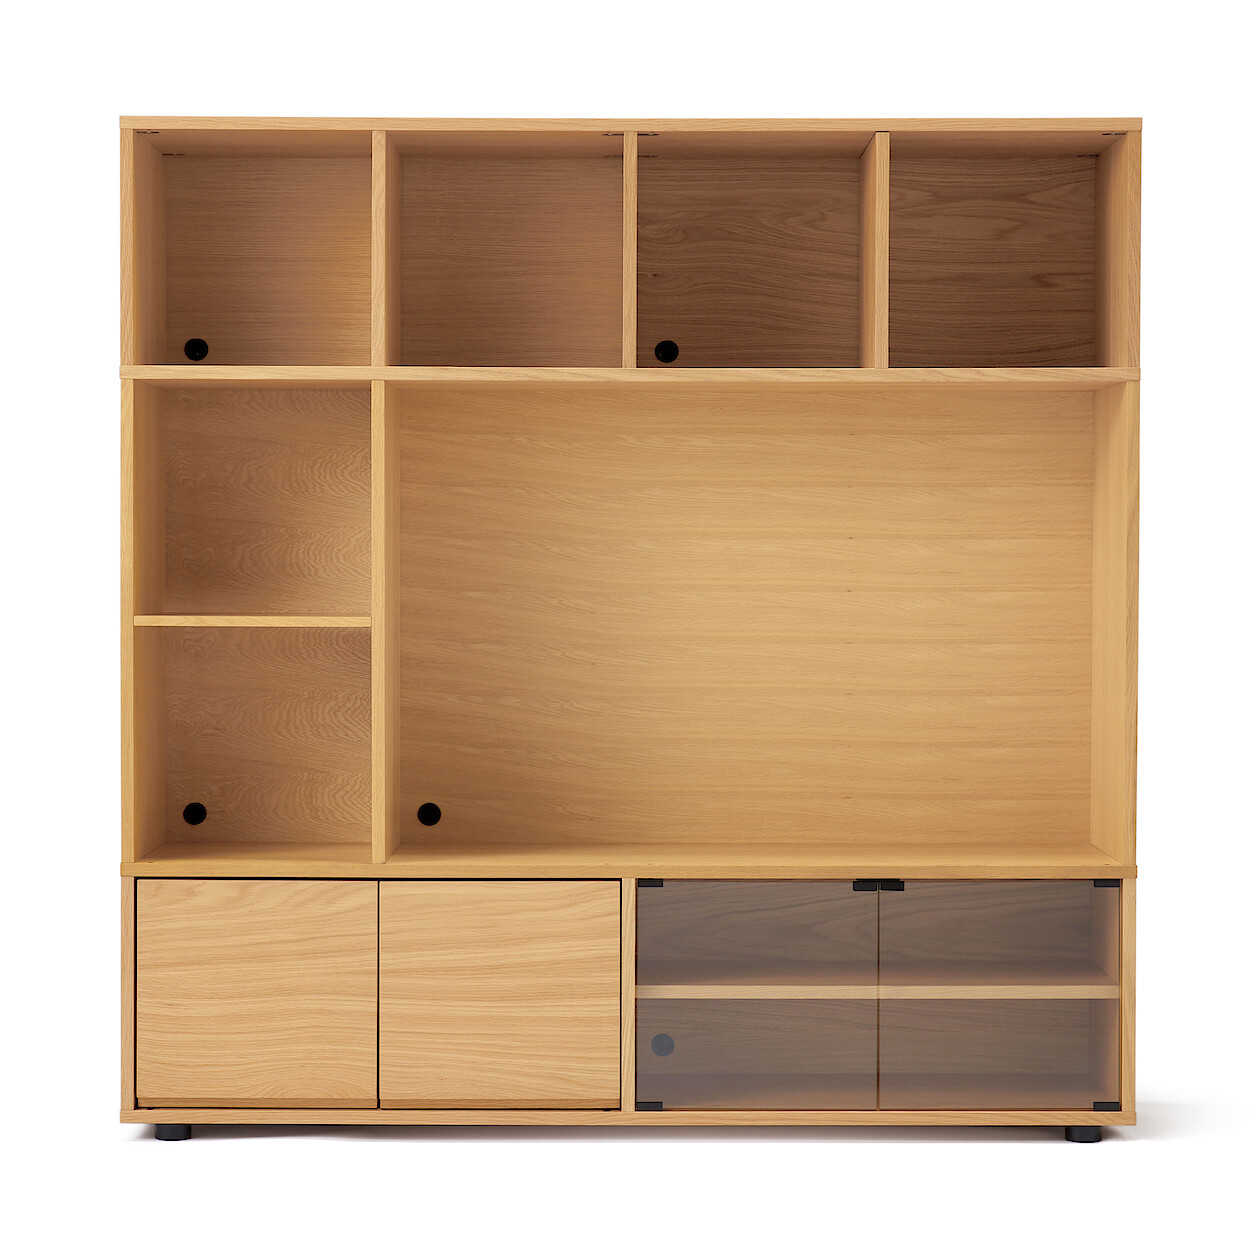 Wooden Stacking Cabinet - AV Set